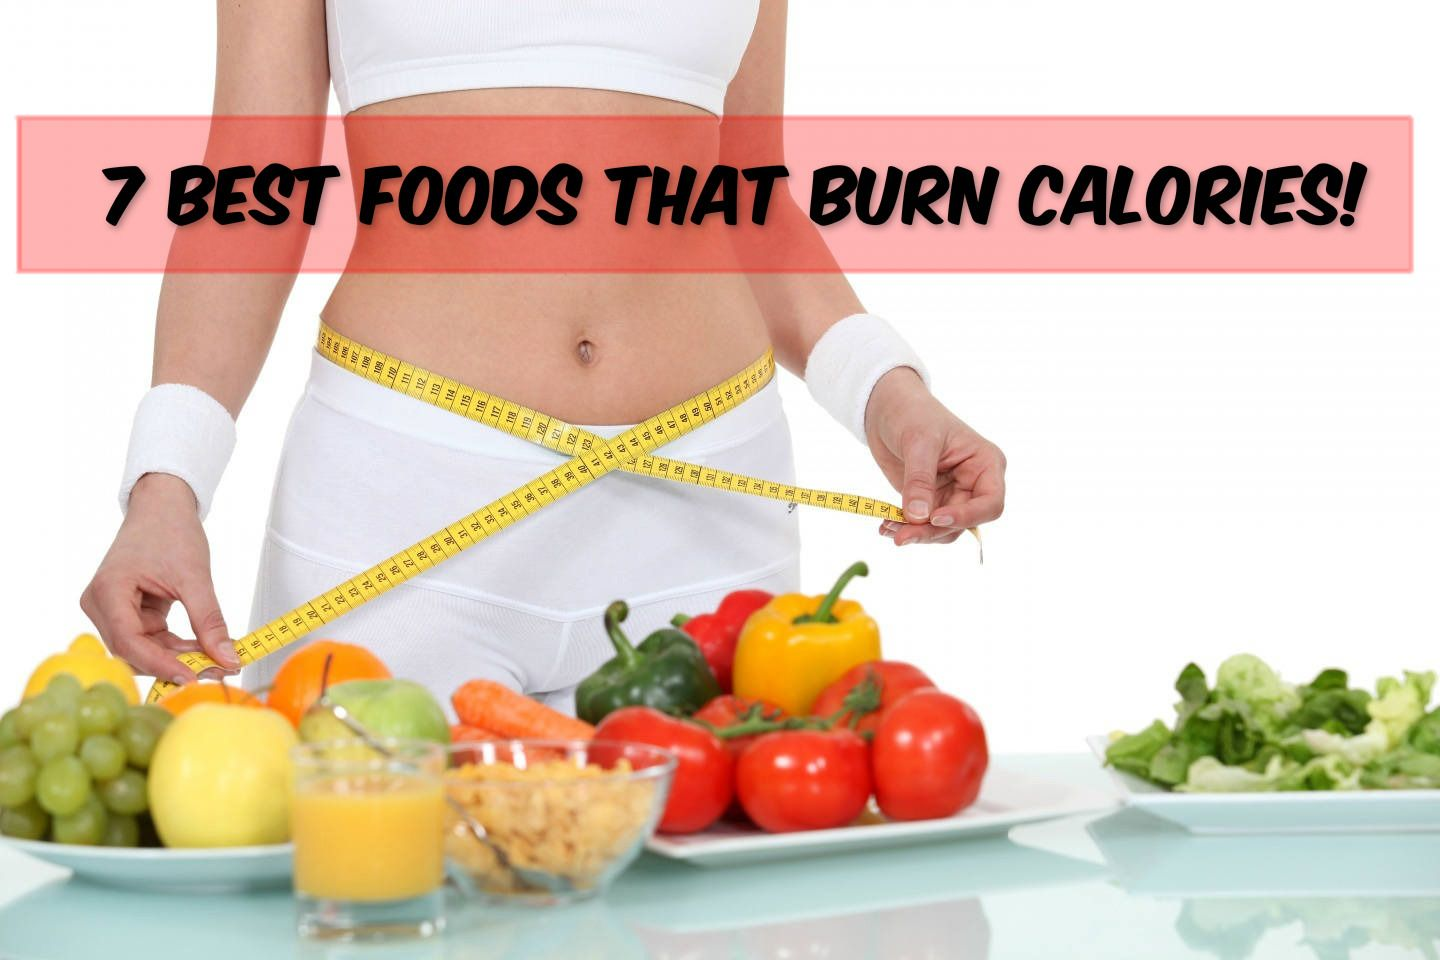 Here are the 7 best foods which burns calories faster! Check it out.